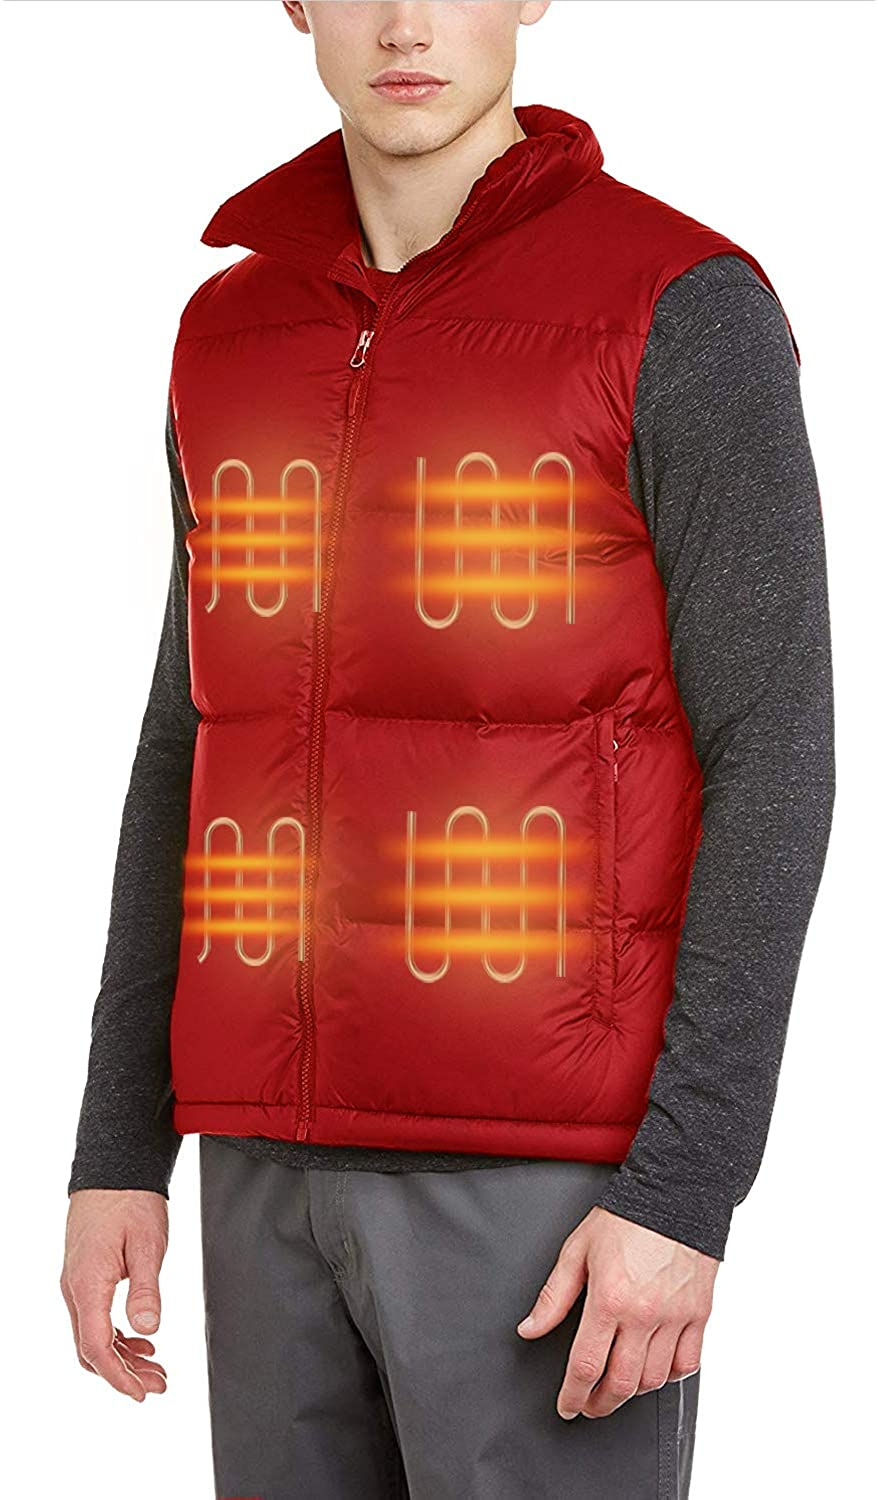 FERNIDA Electric Heated Vest Body Warmer Unisex Heating Vest Jacket Sport Outdoor Clothes(Battery Included)